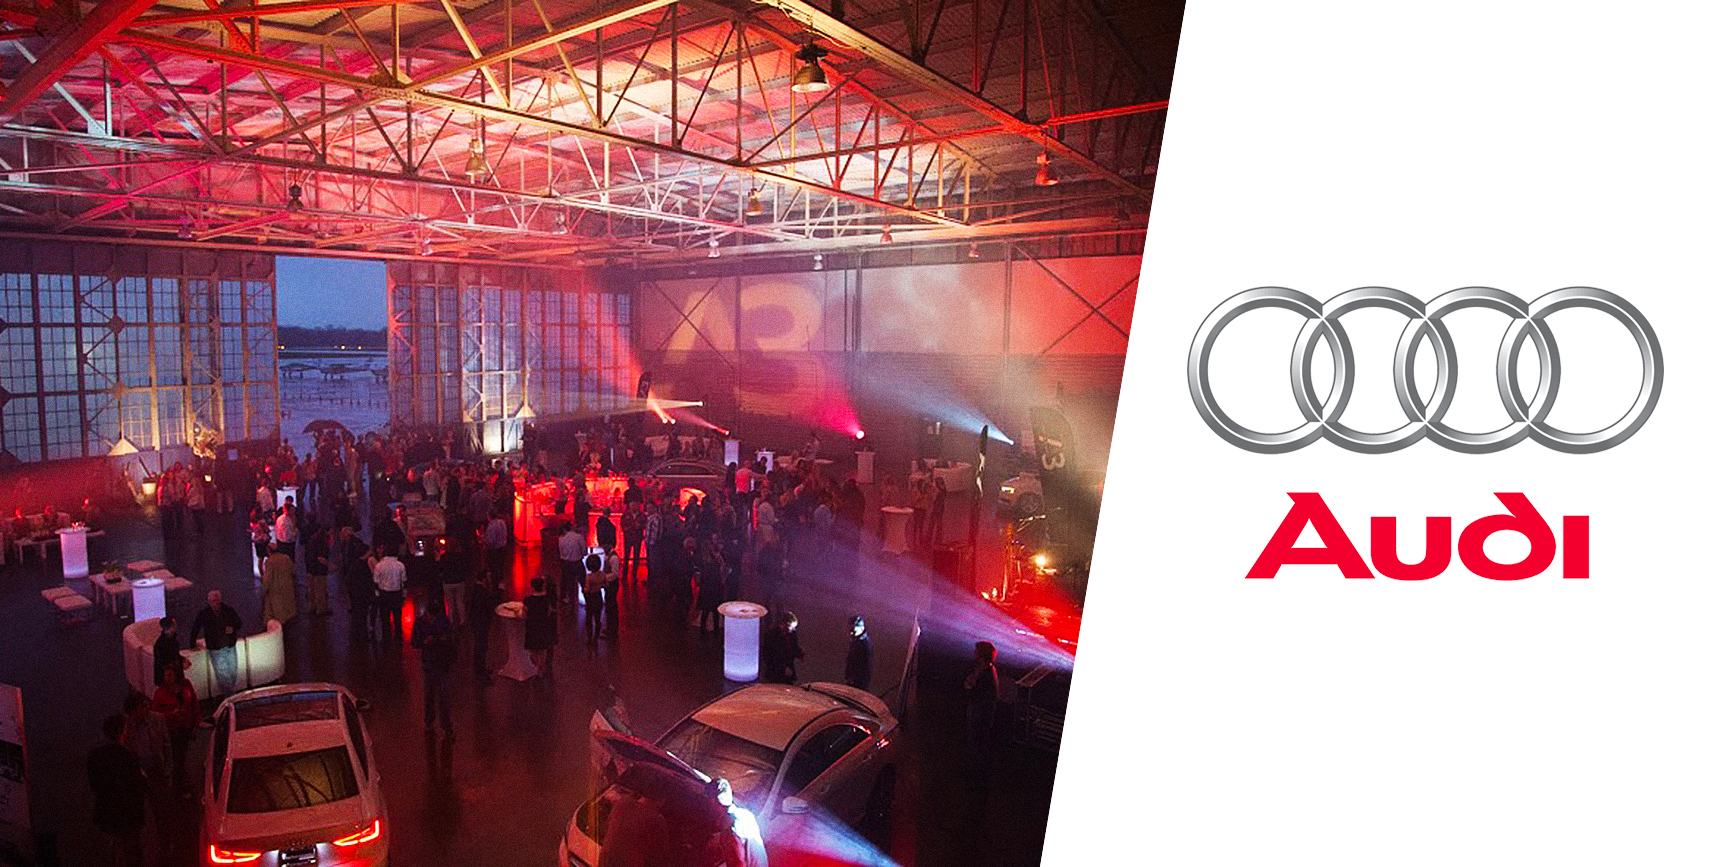 AUDI at A3 Launch - In conjunction with Bluegrass Motor Sports in Louisville, KY as we launched the 2014 Audi A3.